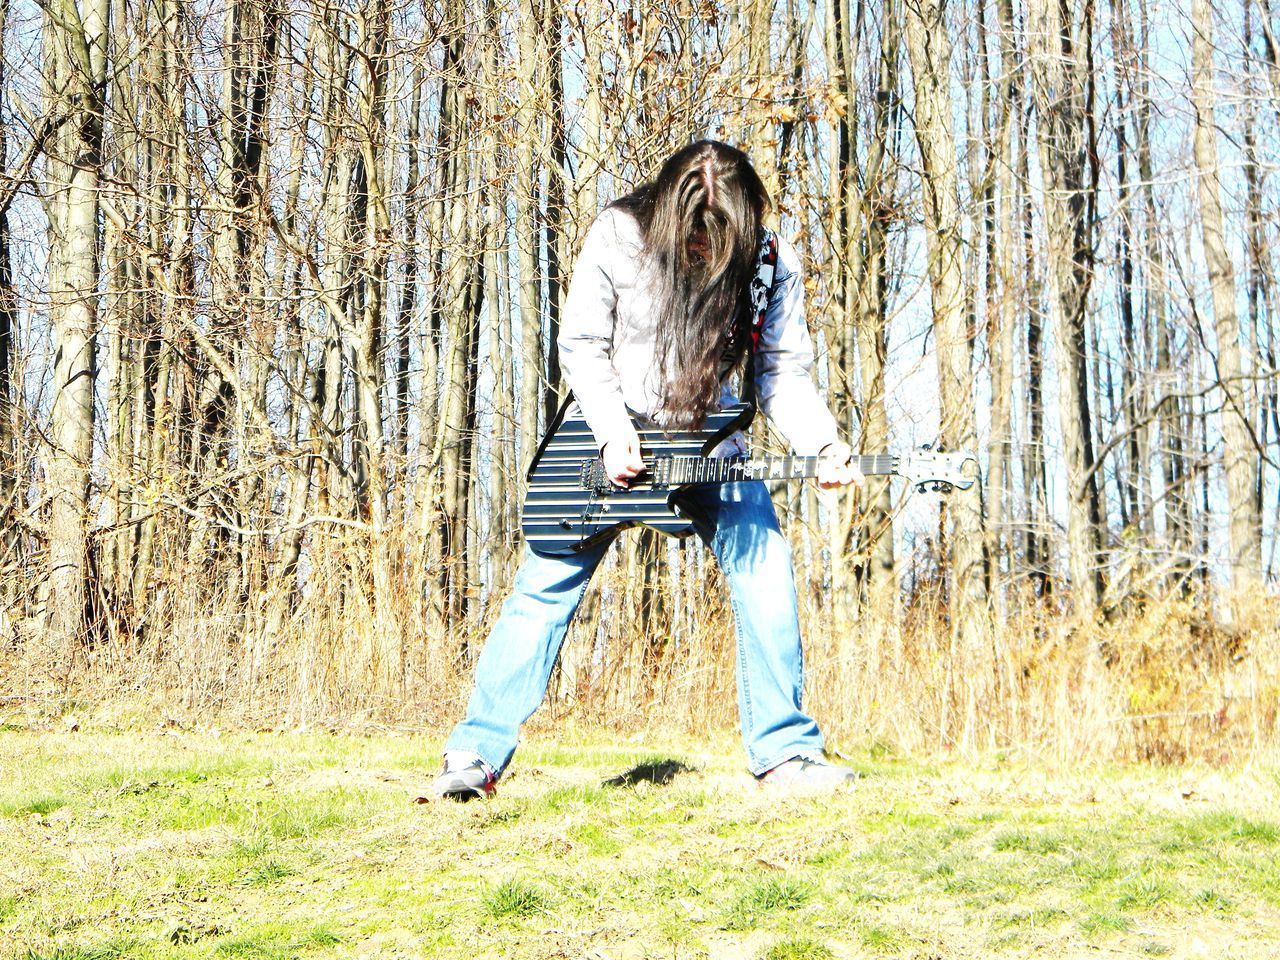 Guitar Guitarist Leisure Activity Long Hair Music Musical Instrument Musician One Person Real People Rock N Roll Tree Young Adult Young Men